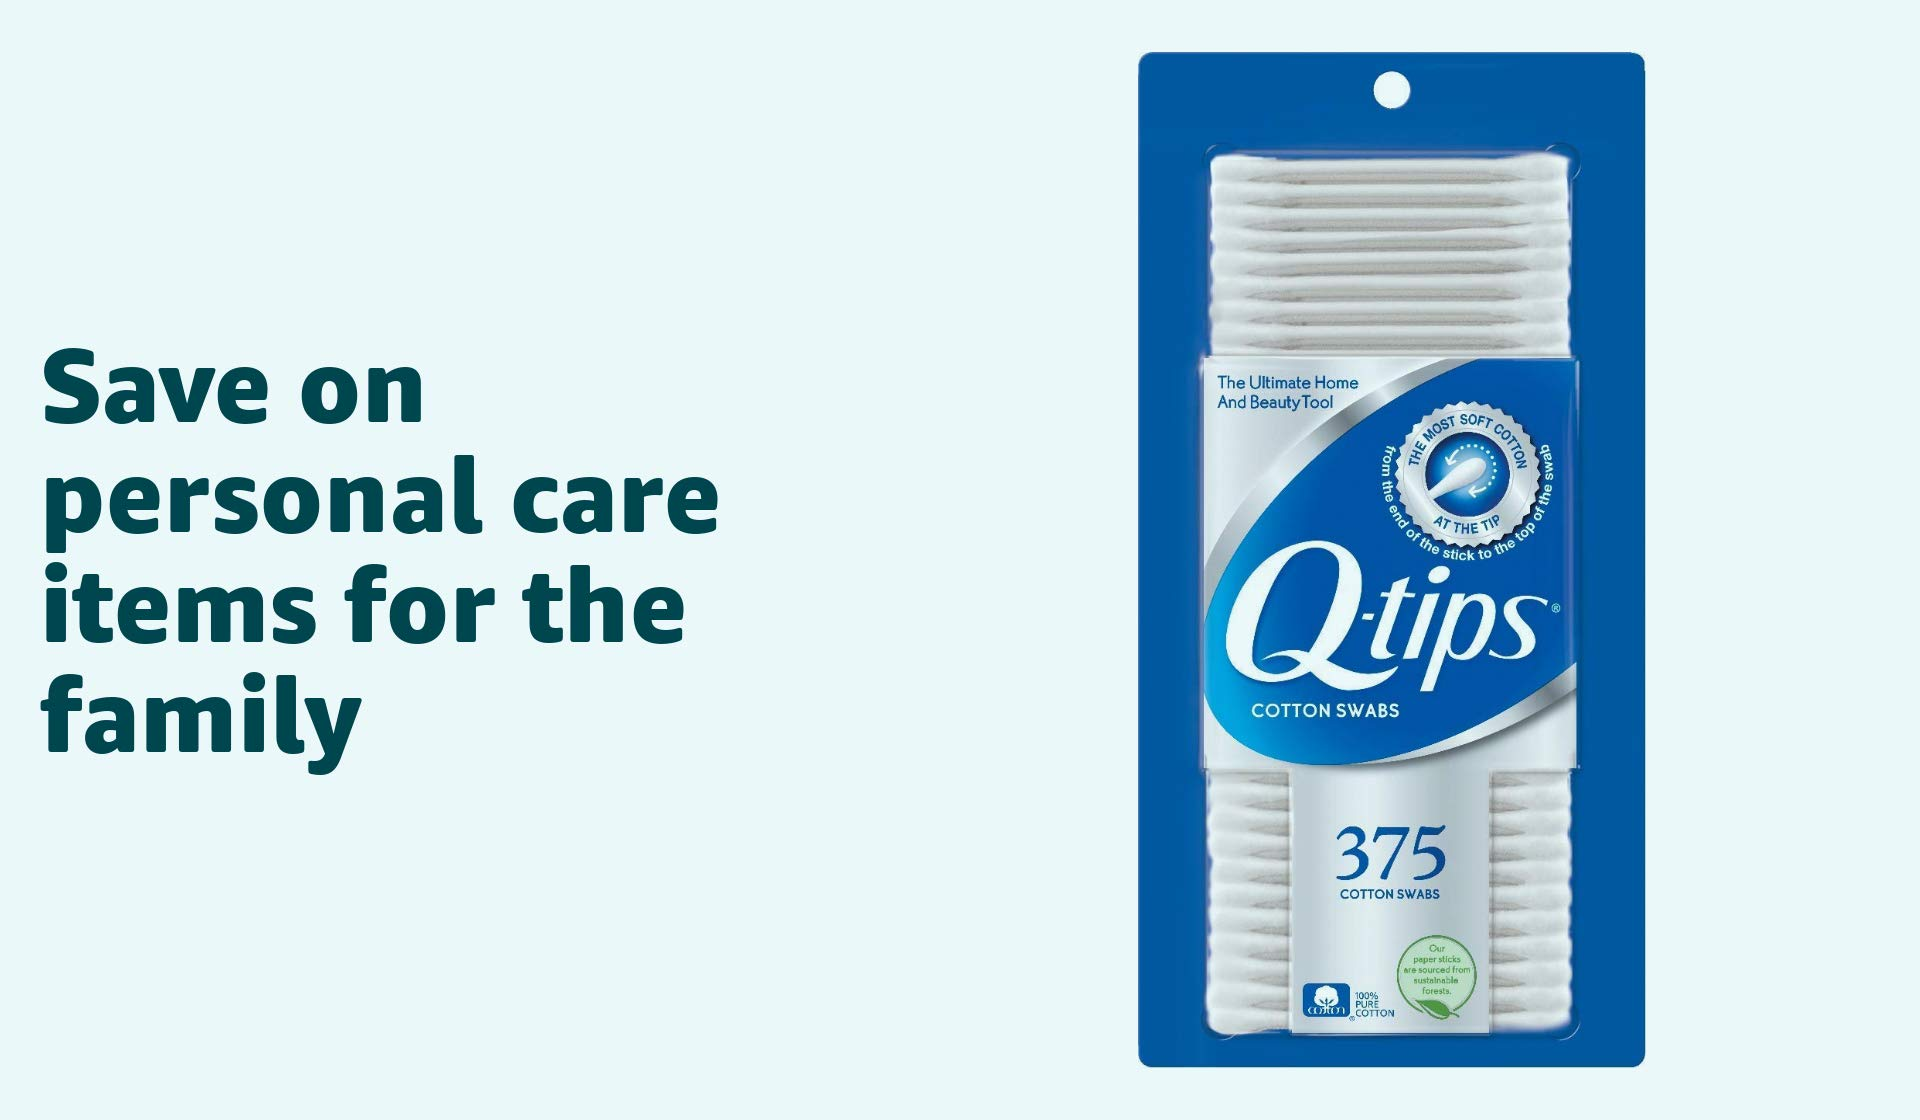 Save on personal care items